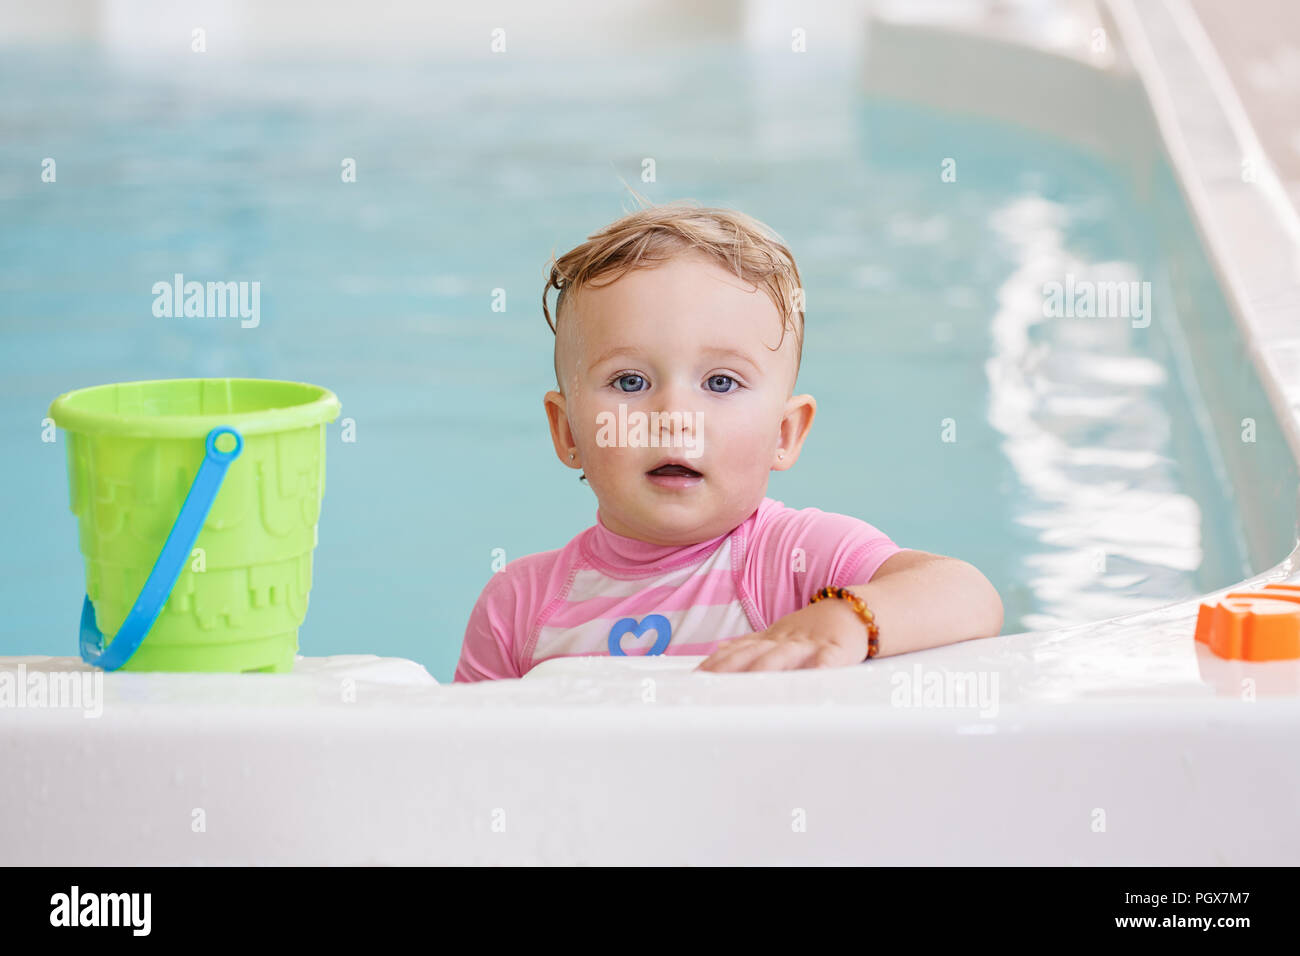 Portrait of white Caucasian baby girl playing with toys in water standing by swimming pool nosing inside, looking in camera, training to swim, healthy Stock Photo